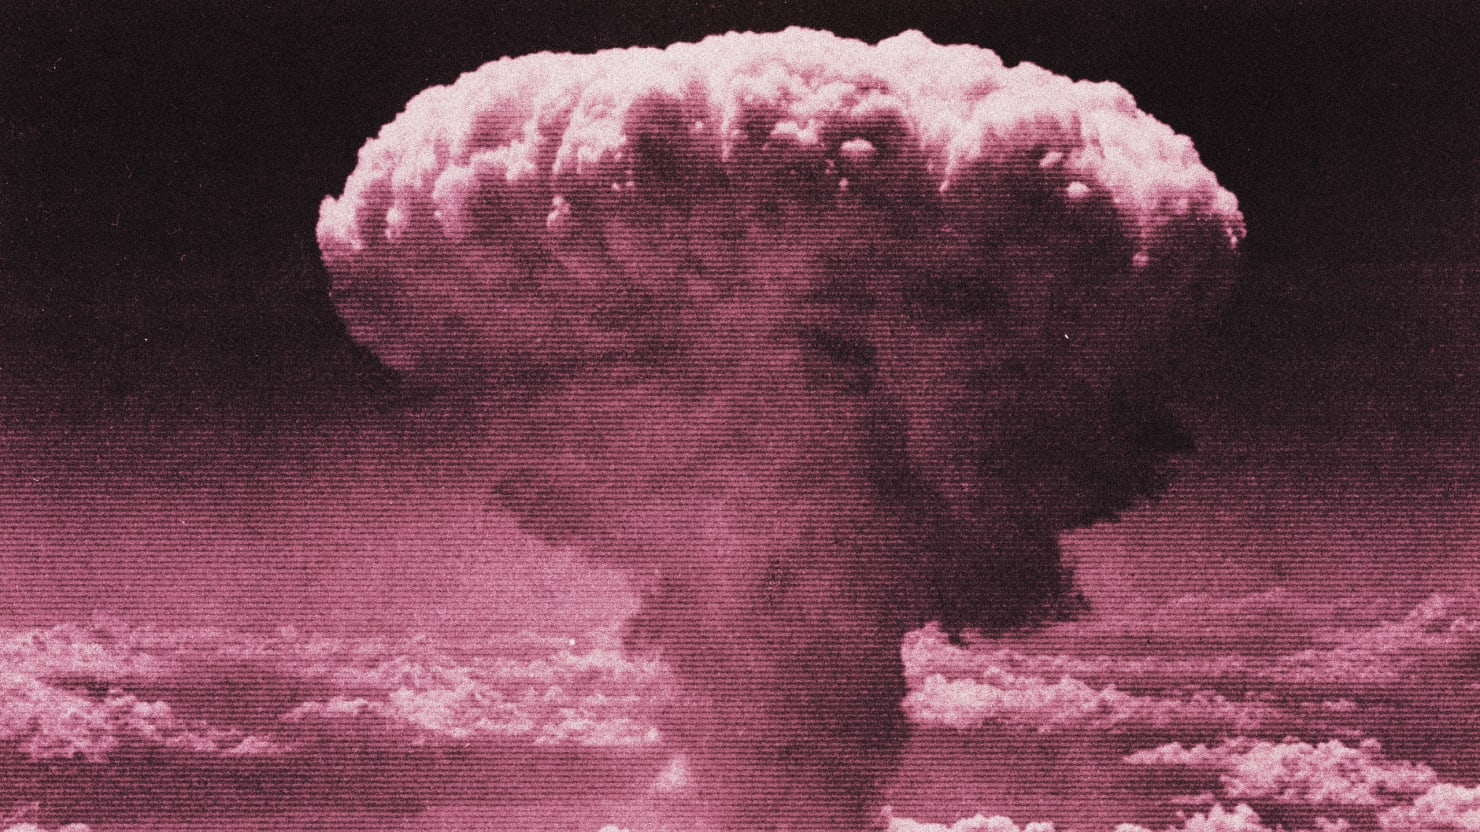 An analysis of the dropping of an atomic bomb on japan